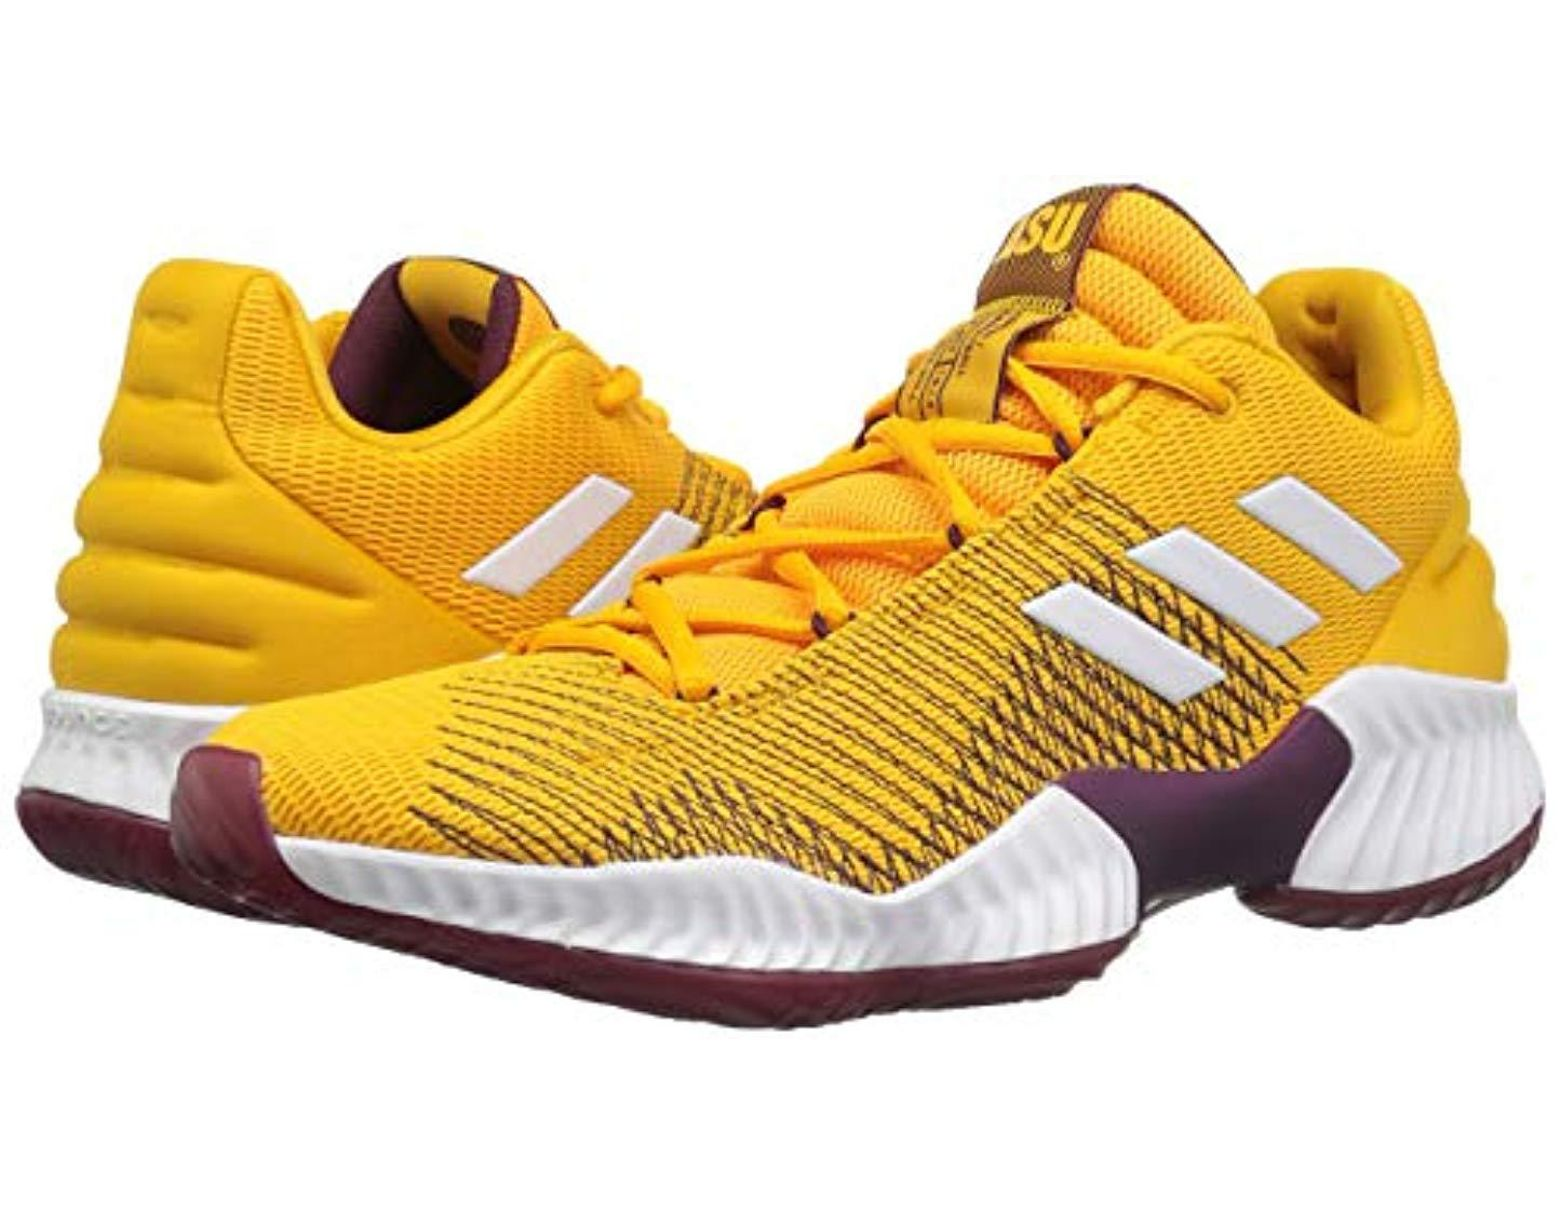 c4a2fd334 Lyst - adidas Originals Pro Bounce 2018 Low Basketball Shoe in Yellow for  Men